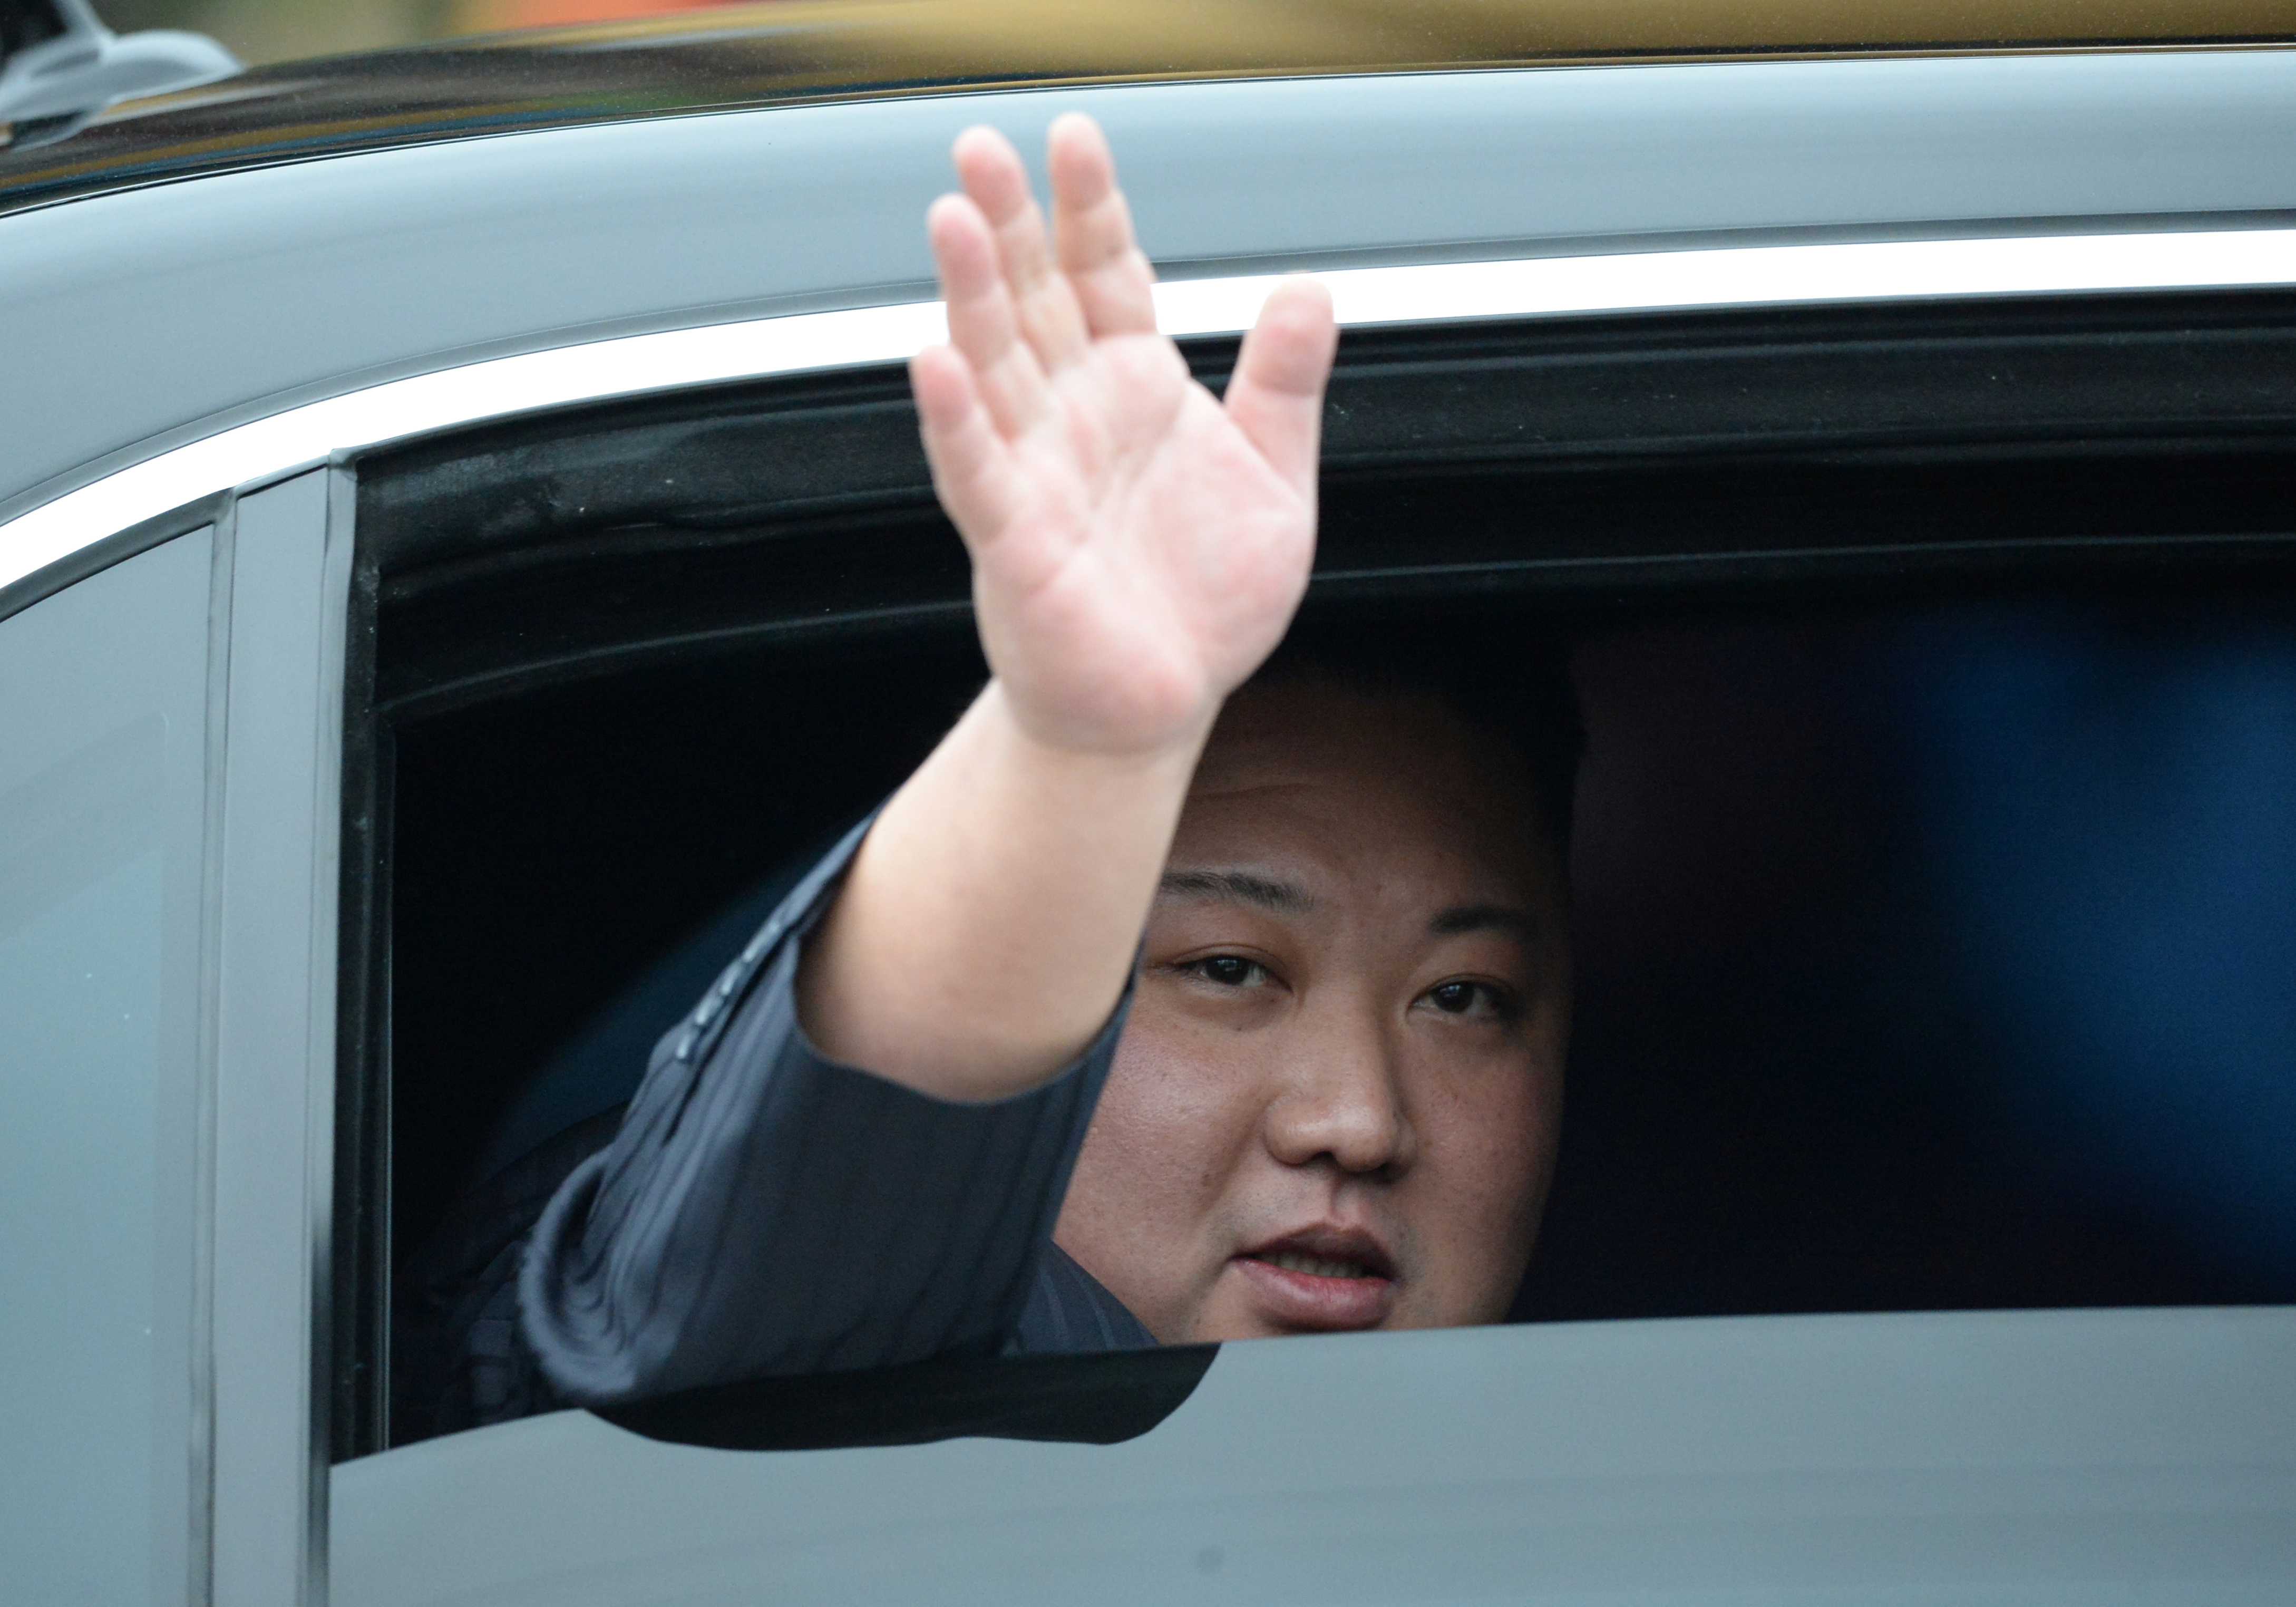 North Korea's leader Kim Jong Un waves upon his arrival at the border town with China in Dong Dang, Vietnam, February 26, 2019. REUTERS/Stringer NO RESALES. NO ARCHIVES - RC1DE9DF3E20